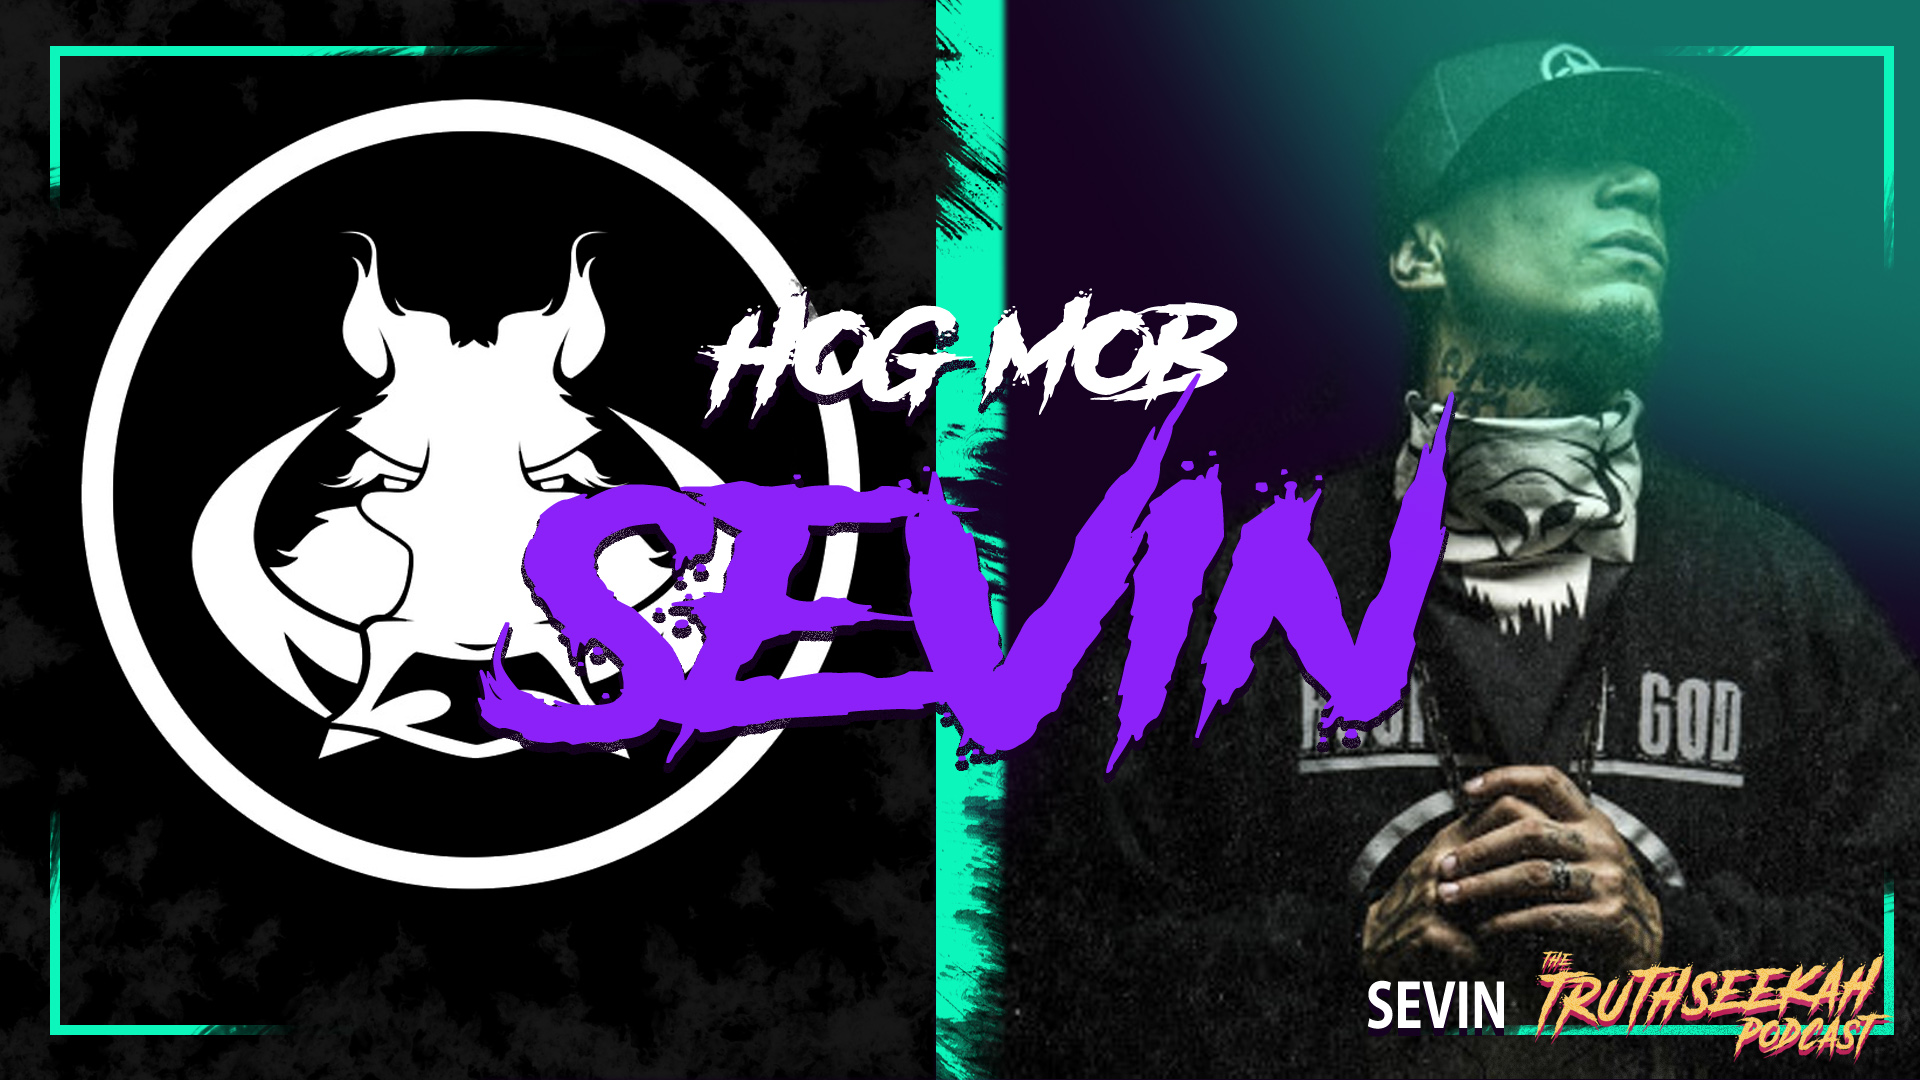 Sevin of HOGMOB   Being An Outcast And The Ugly Side Of Christian Ministry